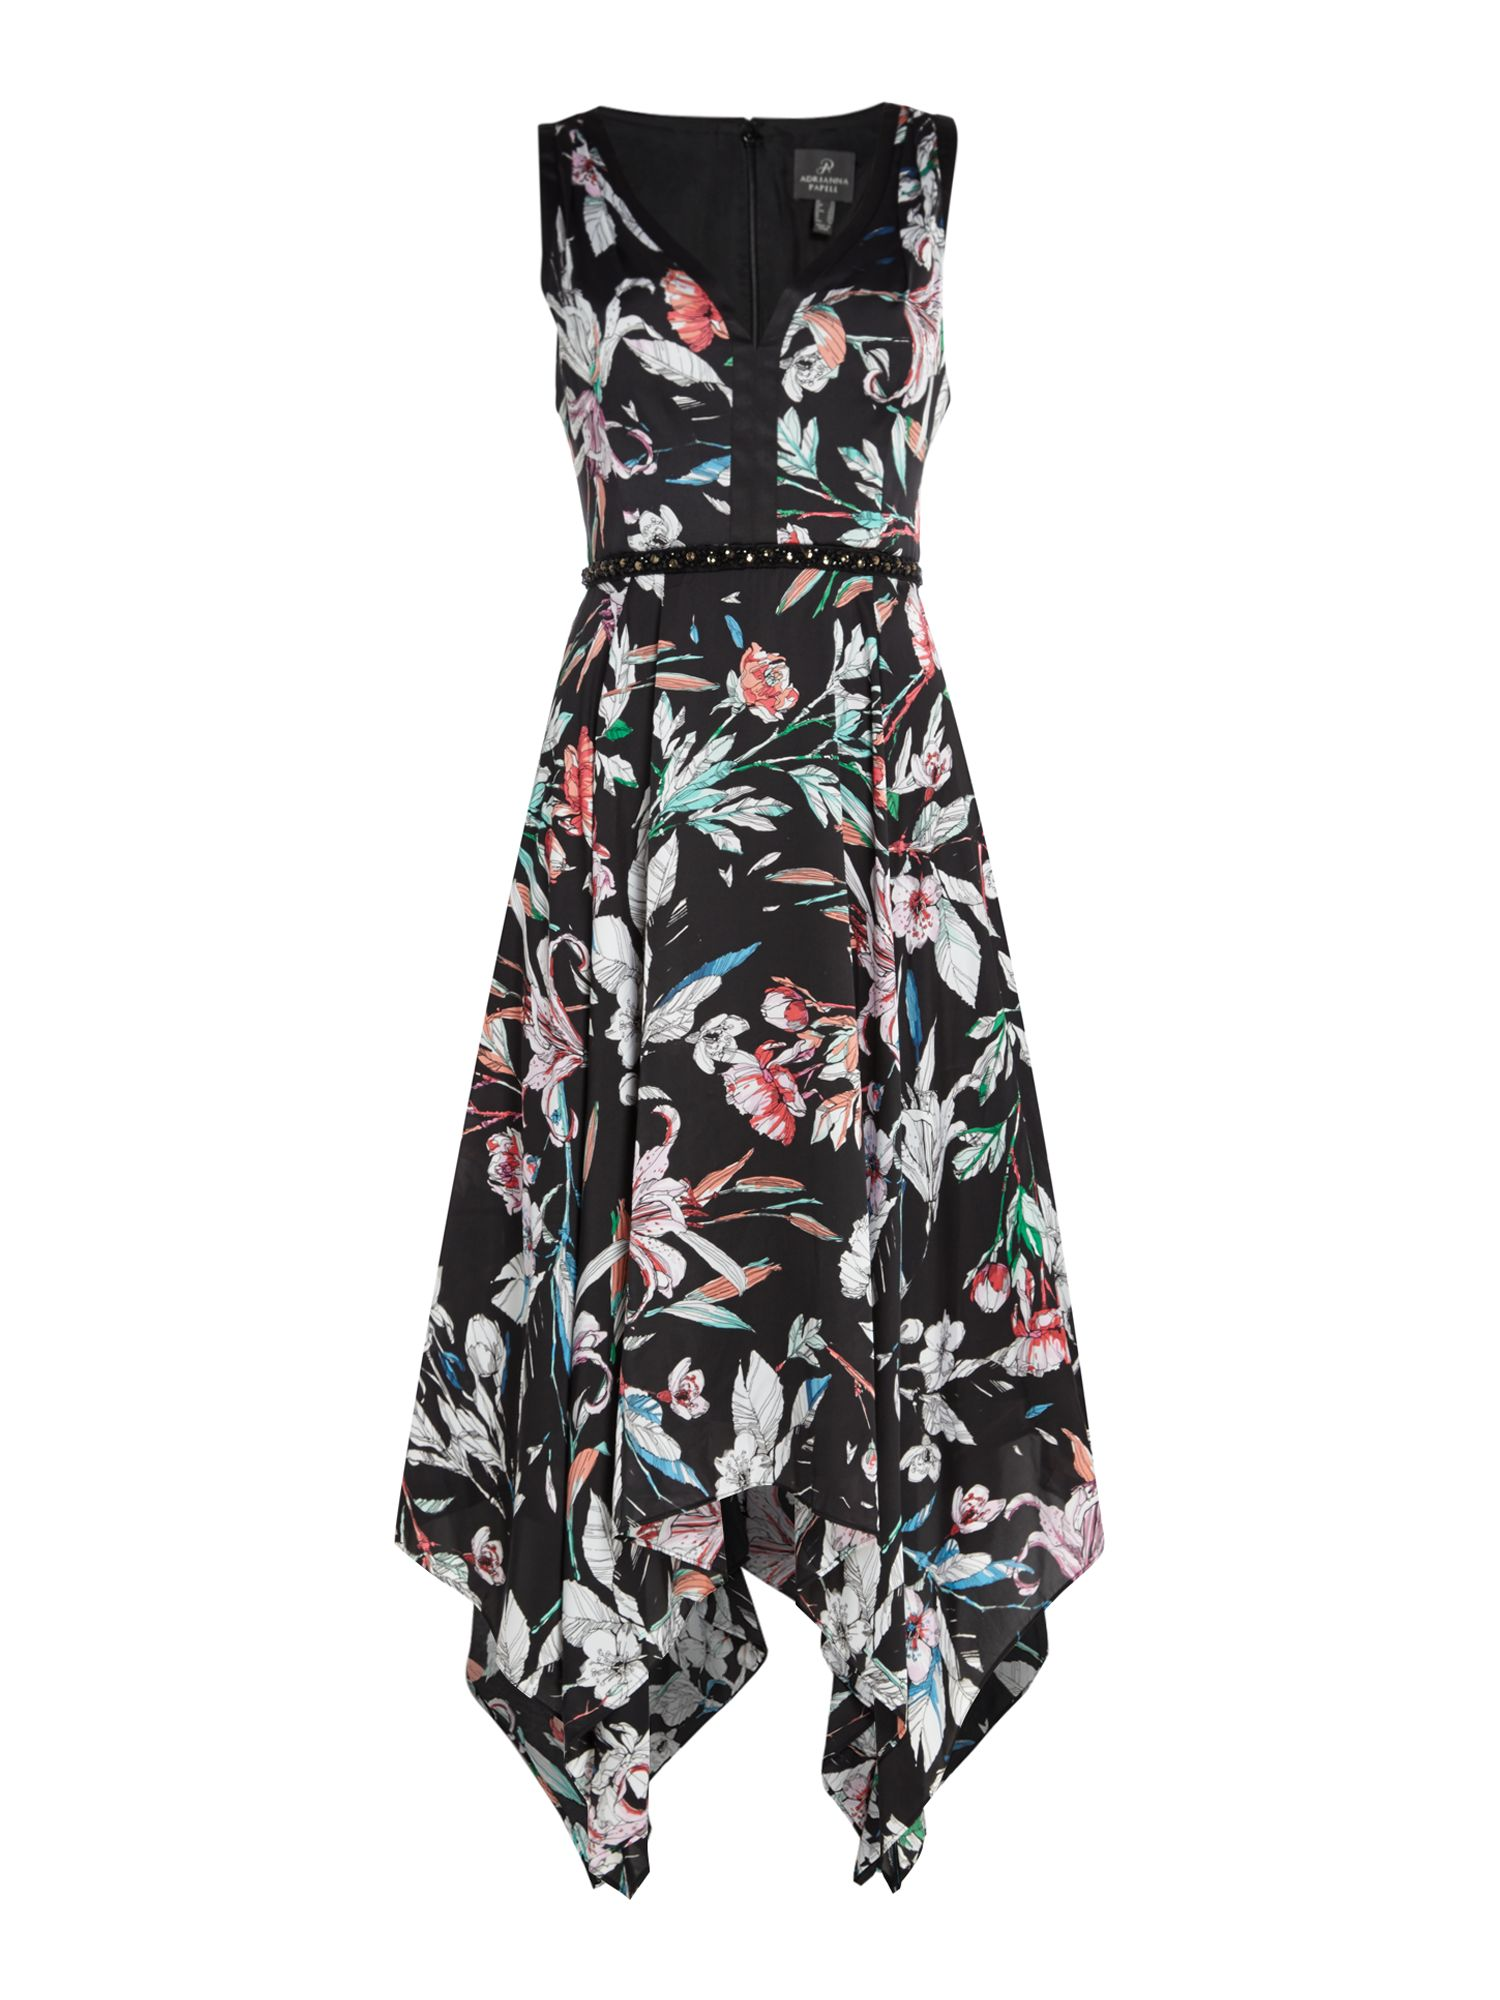 Adrianna Papell V neck floral dress with hankie hem, Black Multi